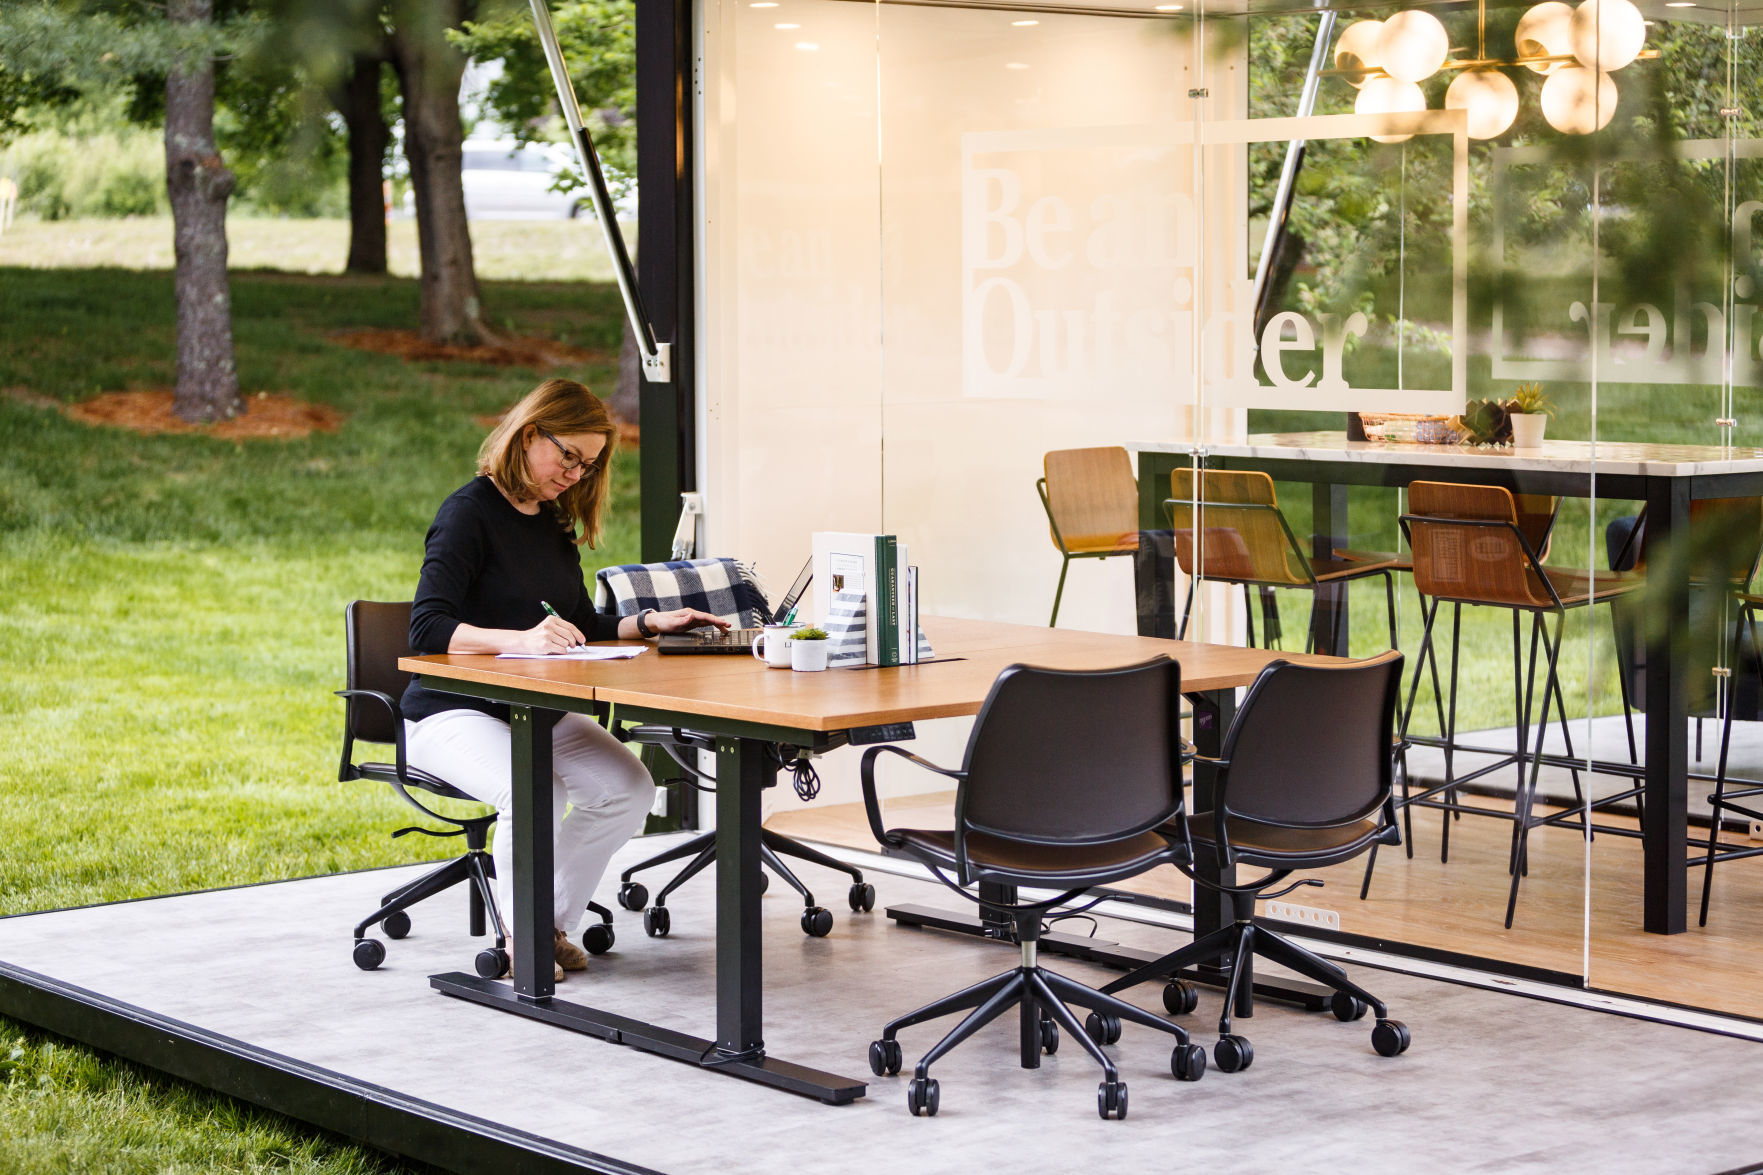 L.L. Bean To Bring Outdoor Office Space To Downtown Madison | Madison  Wisconsin Business News | Madison.com